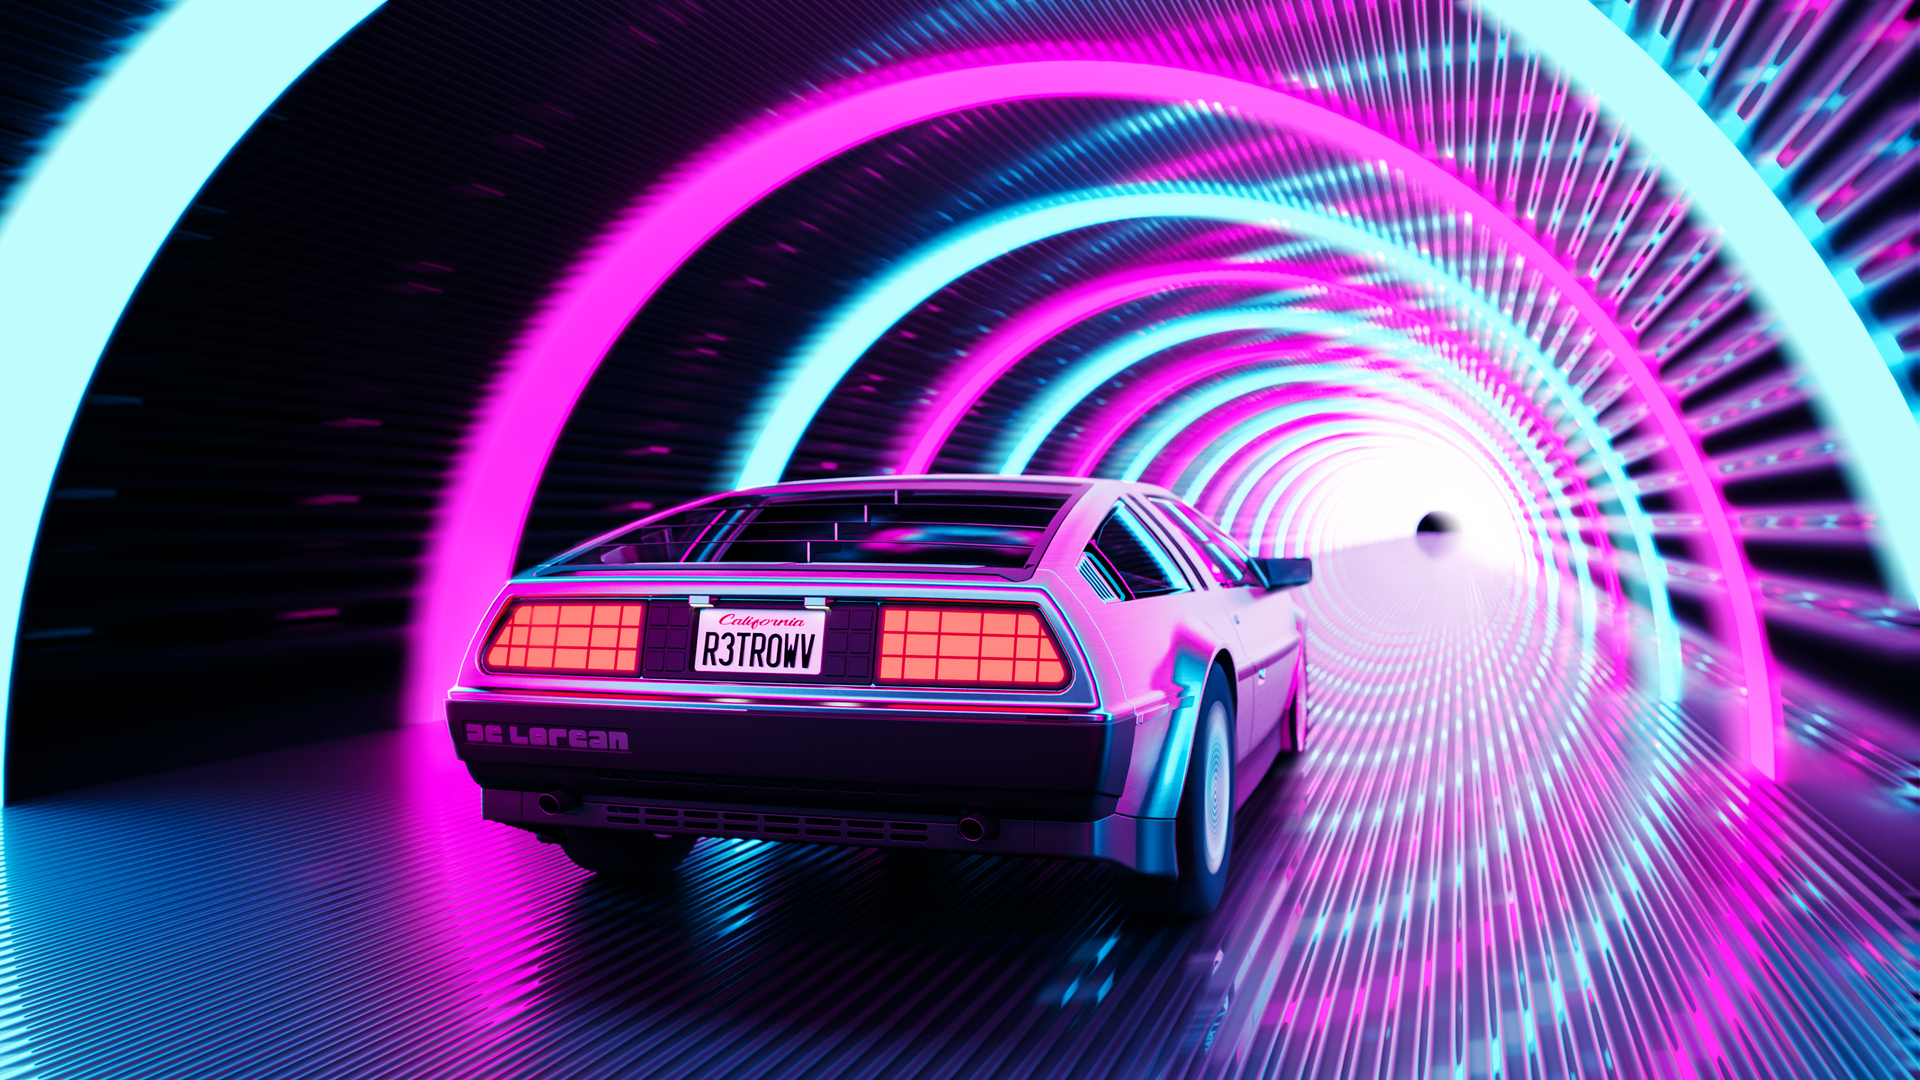 1920x1080 Retro Delorean 4k Laptop Full Hd 1080p Hd 4k Wallpapers Images Backgrounds Photos And Pictures